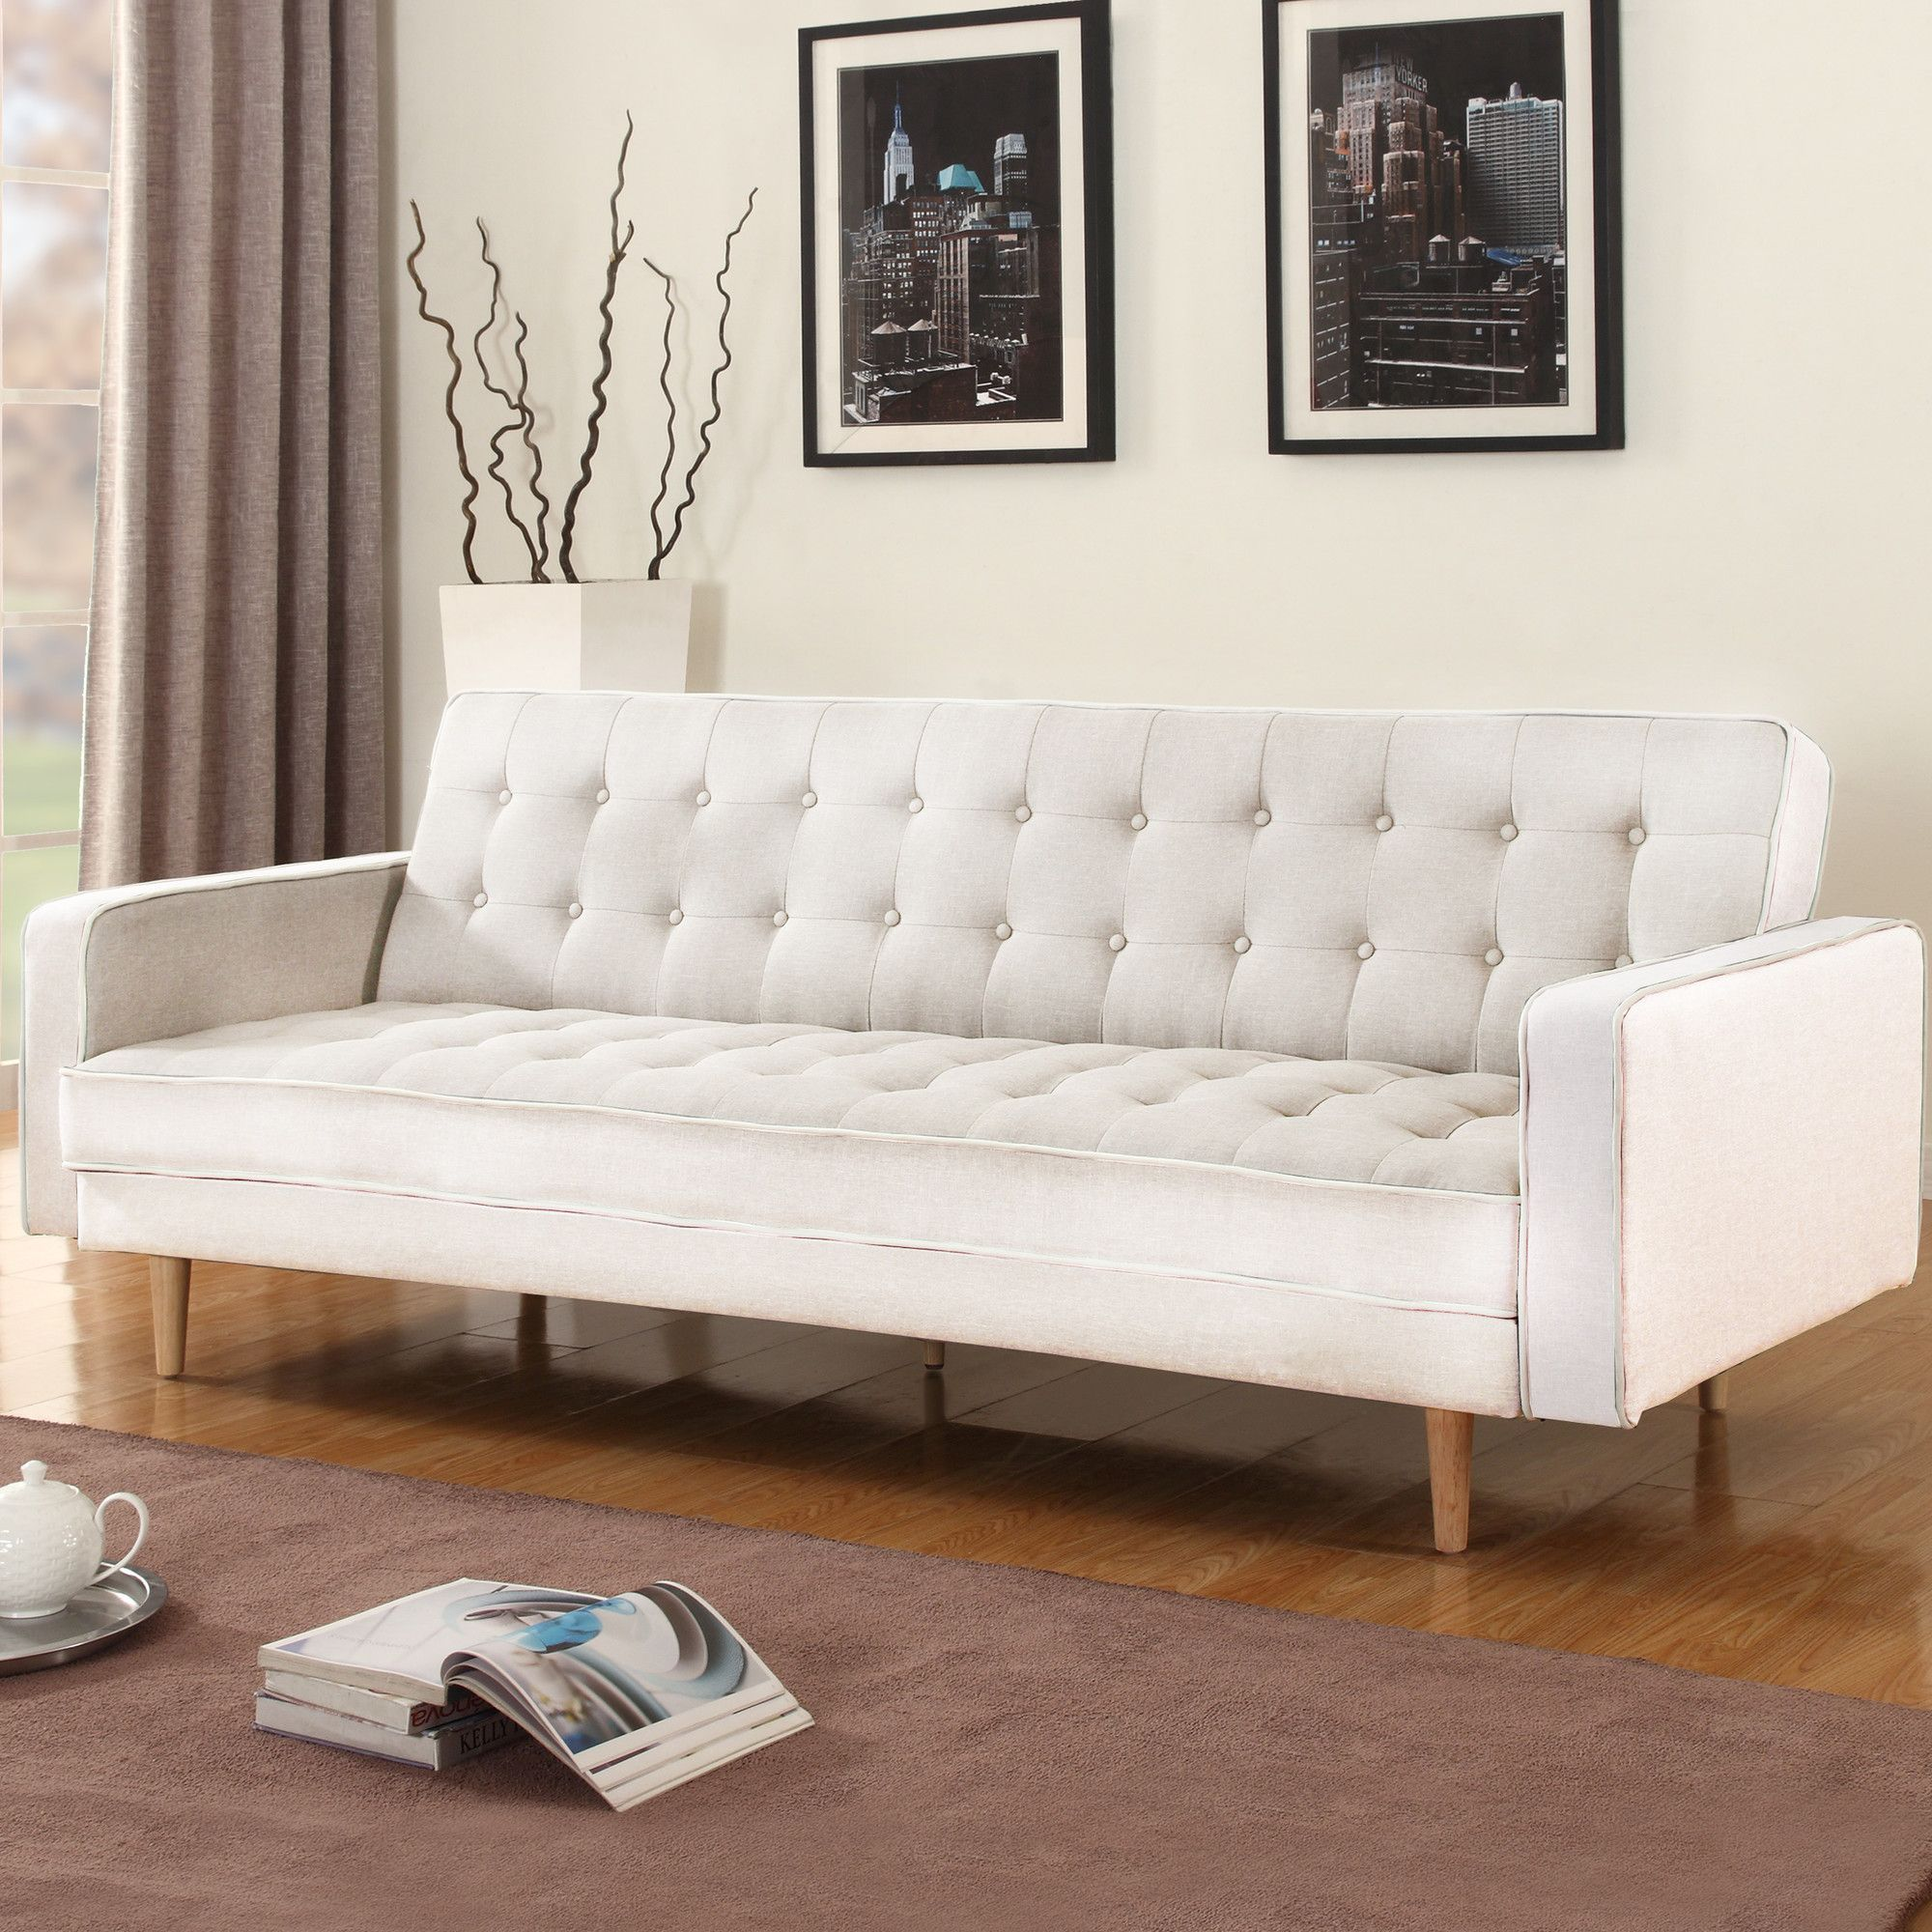 Features Easy Conversion To Sleeper And Back Sofa Soft Linen Upholstery Product Type Convertible Style Modern Frame Material Wood